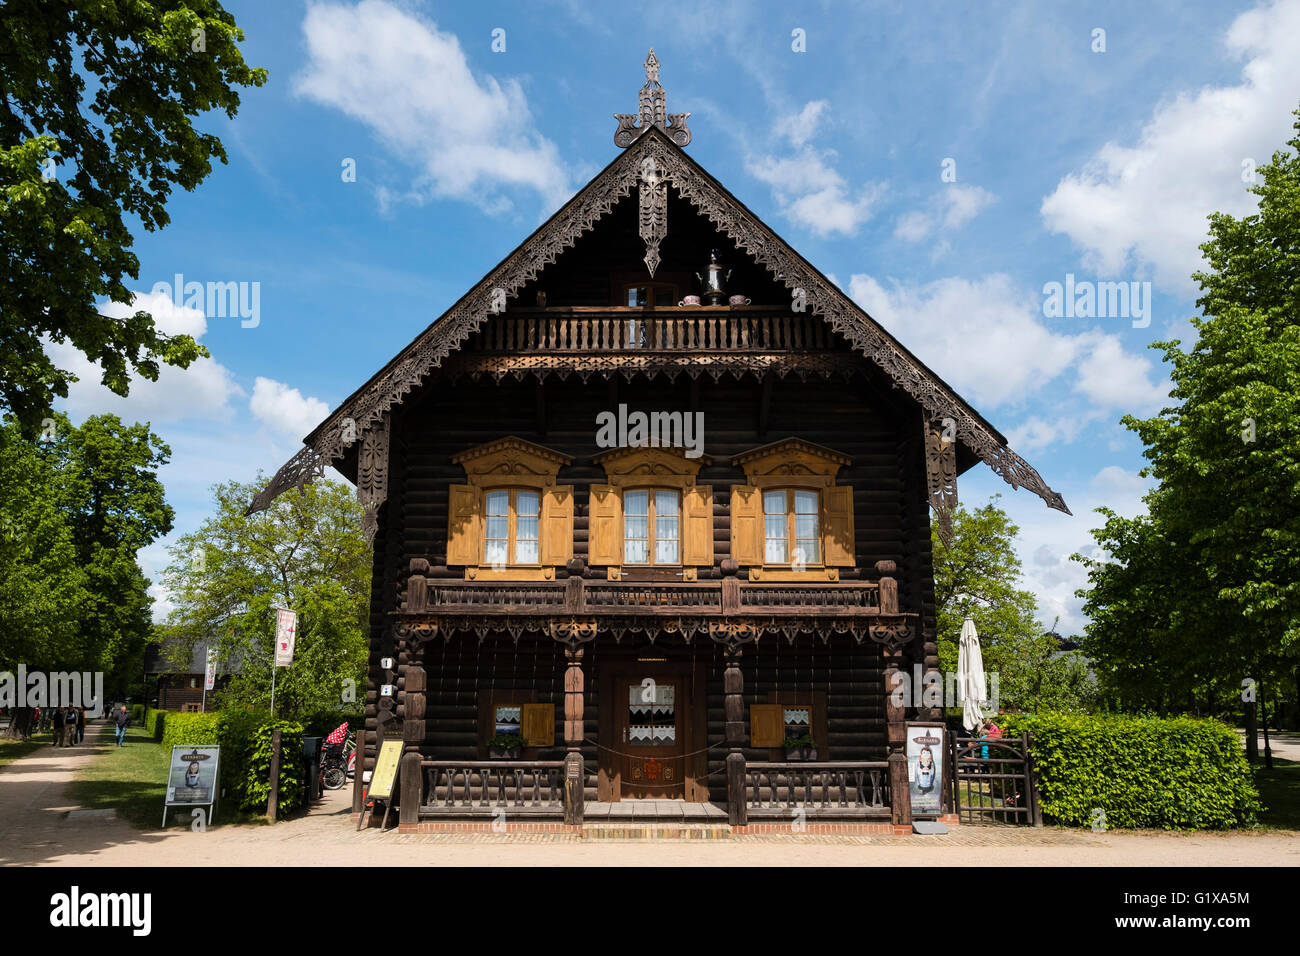 Wooden house on display at Russischen Kolonie ( Russian Colony) Alexandrowka, Potsdam, Brandenburg, Germany - Stock Image